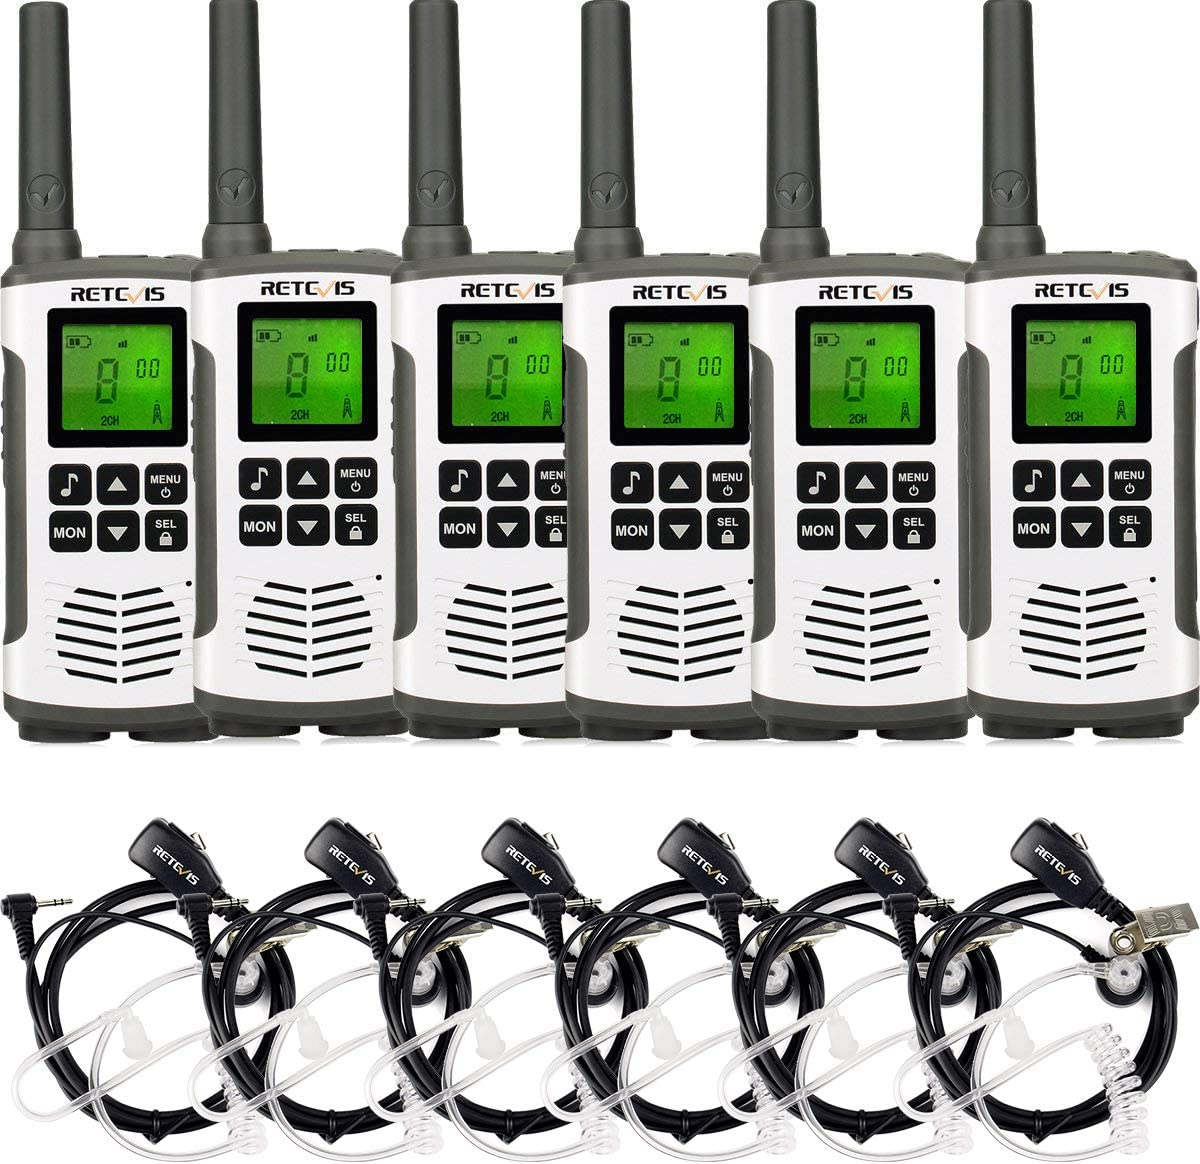 Retevis RT45 2 Way Radio Walkie Talkie Adult